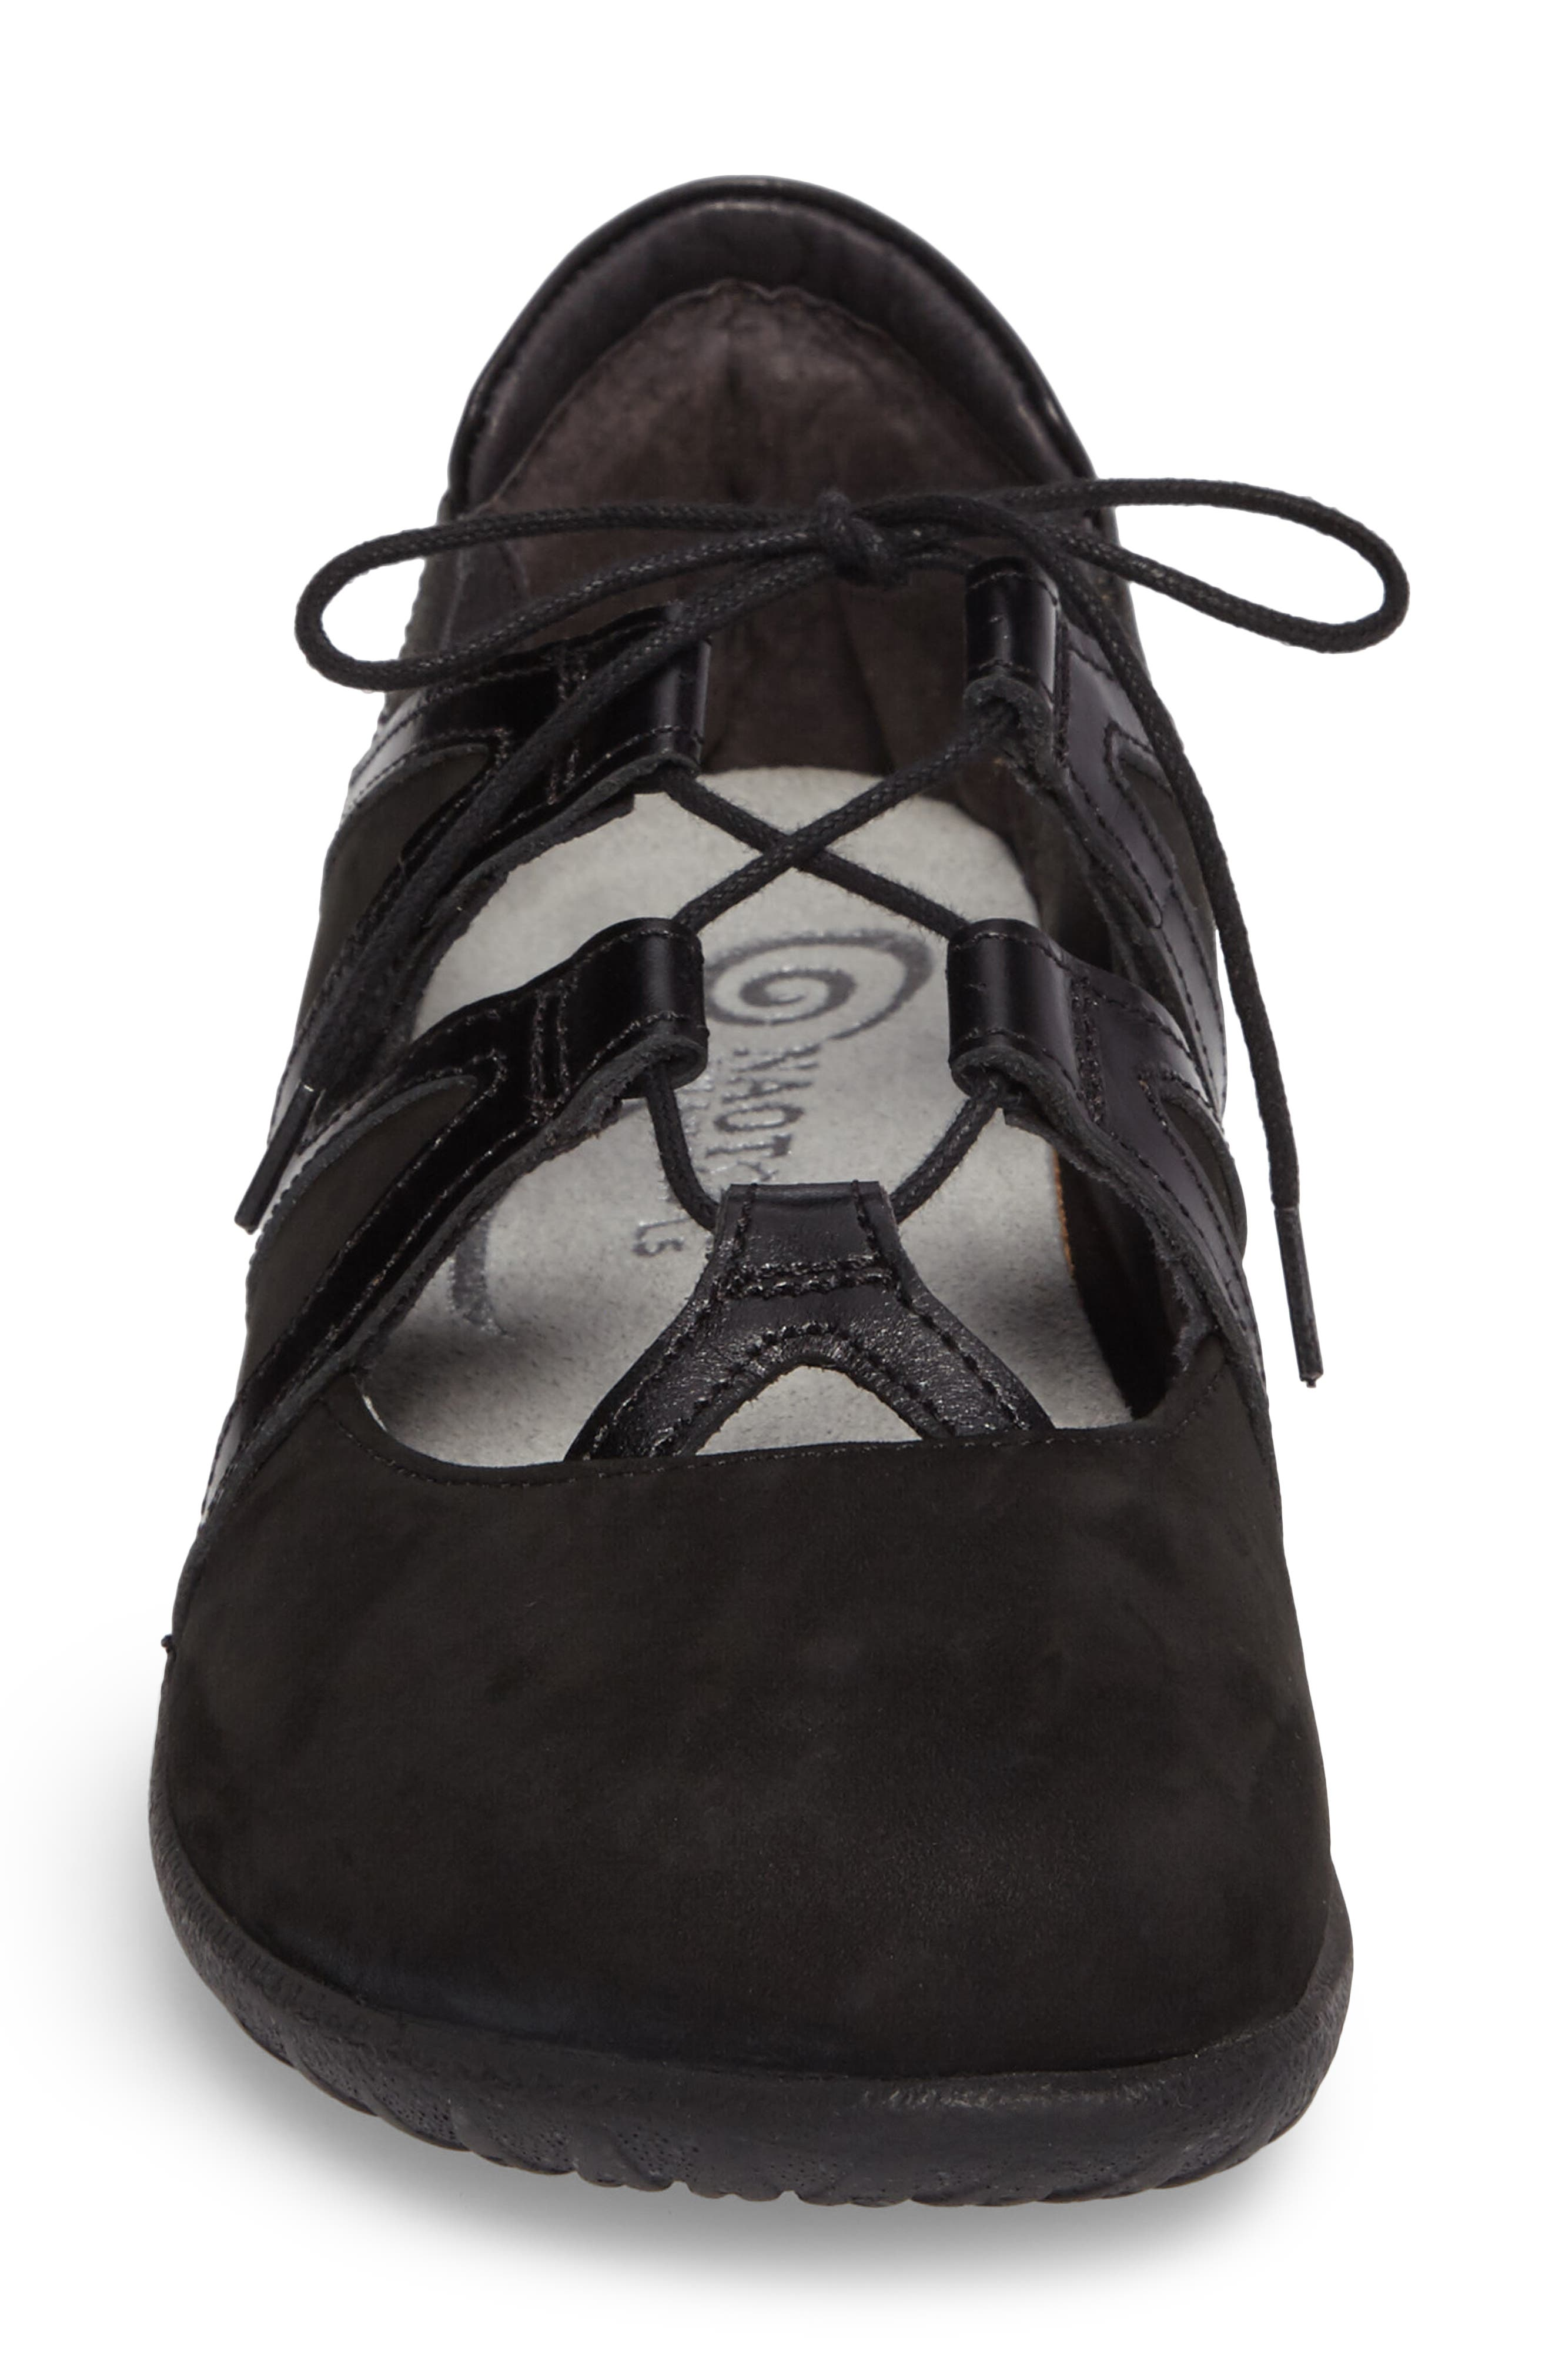 Timu Ghillie Lace Flat,                             Alternate thumbnail 4, color,                             BLACK MADRAS LEATHER